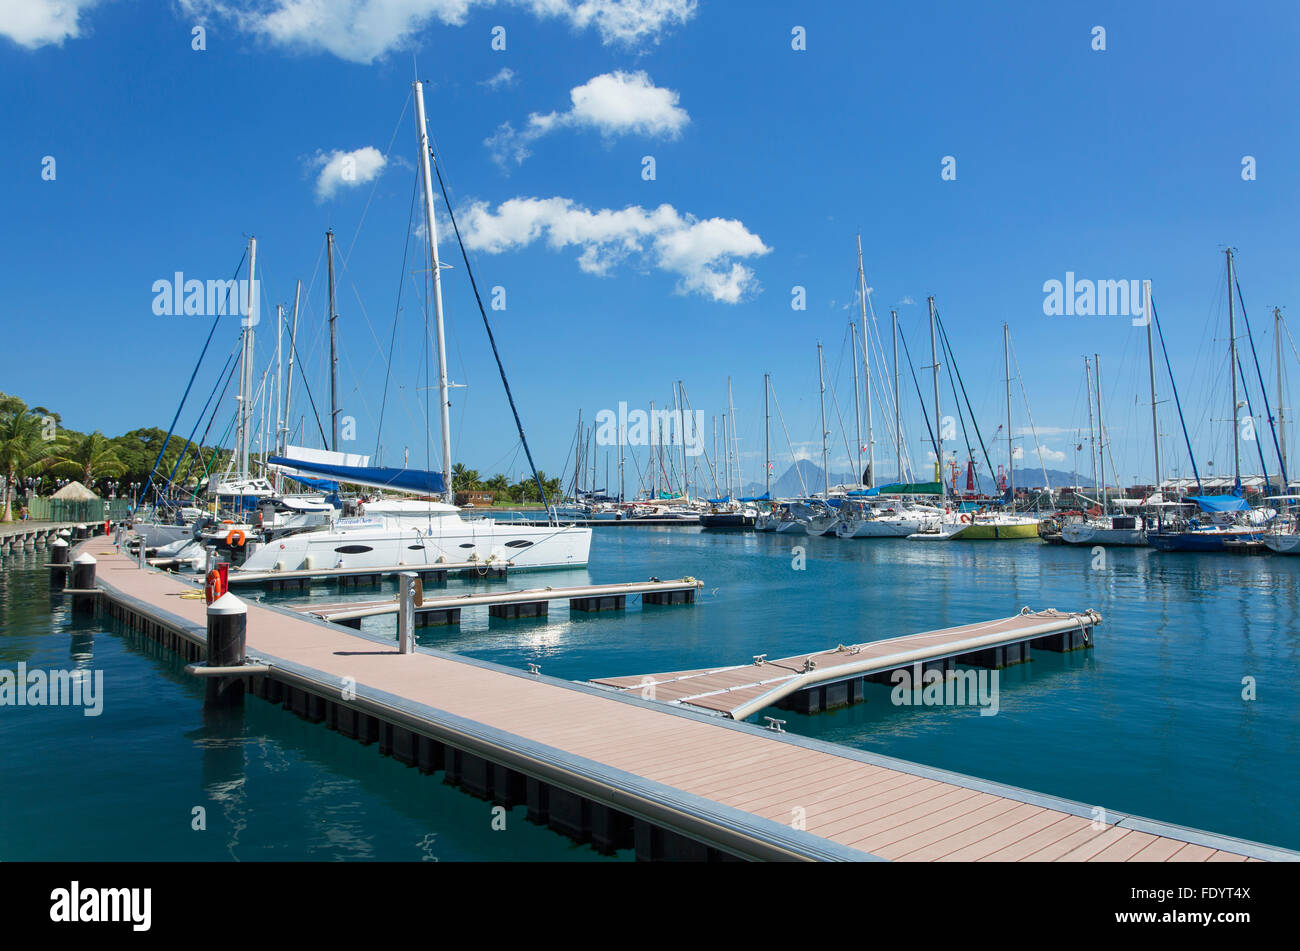 Yachts in harbour, Pape'ete, Tahiti, French Polynesia Stock Photo